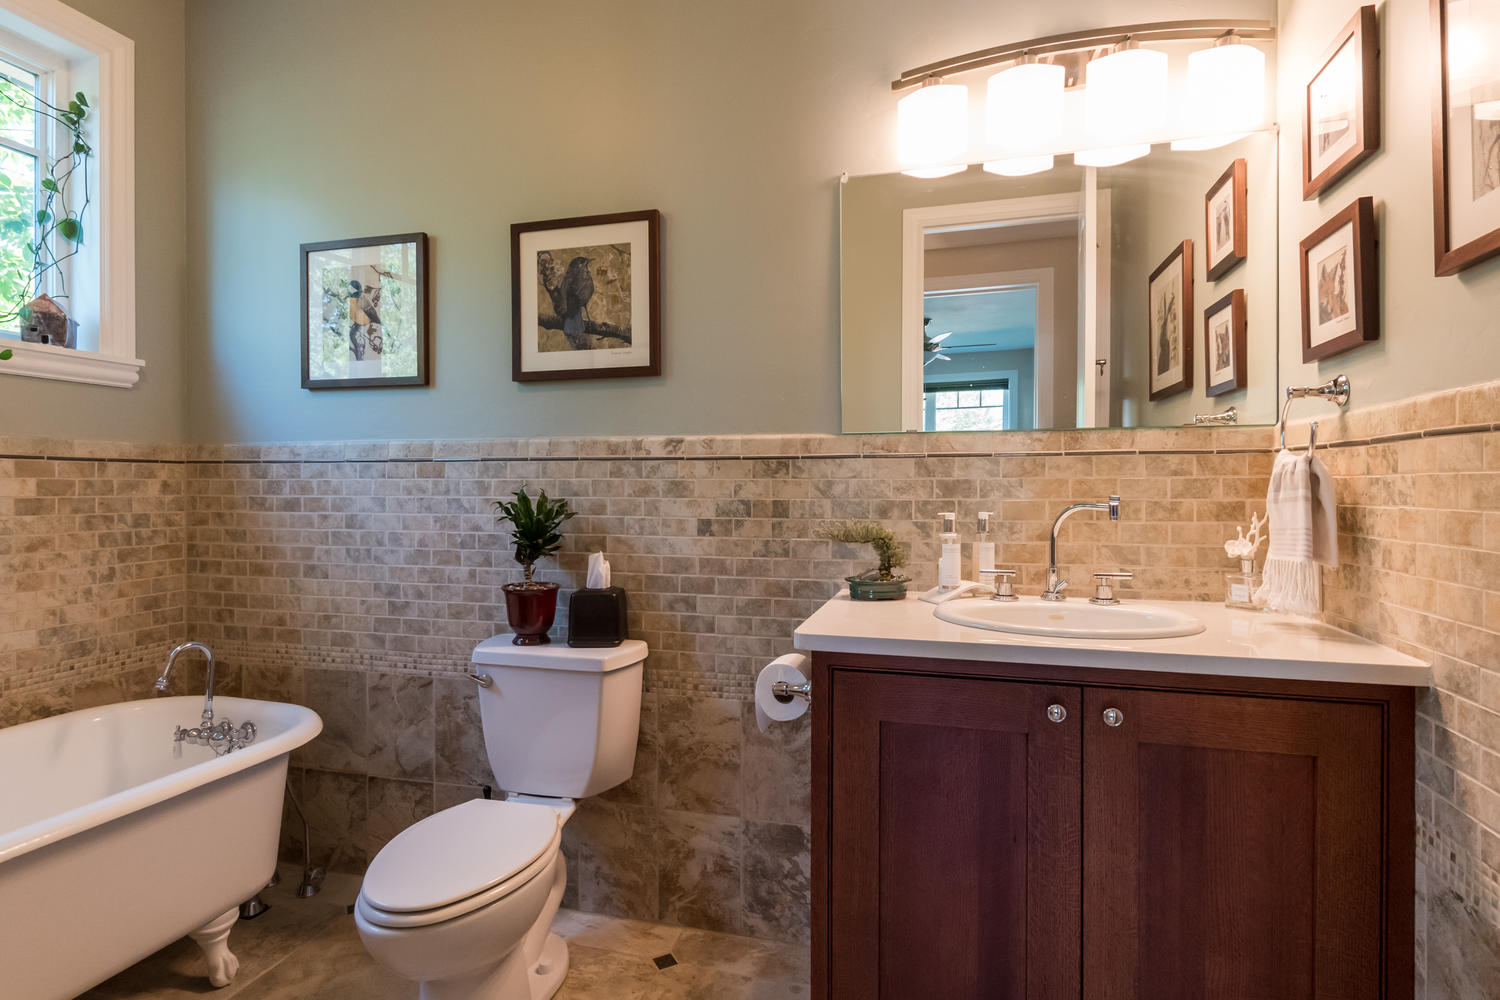 Bright, sunny bathroom with claw tub and faux brick tile